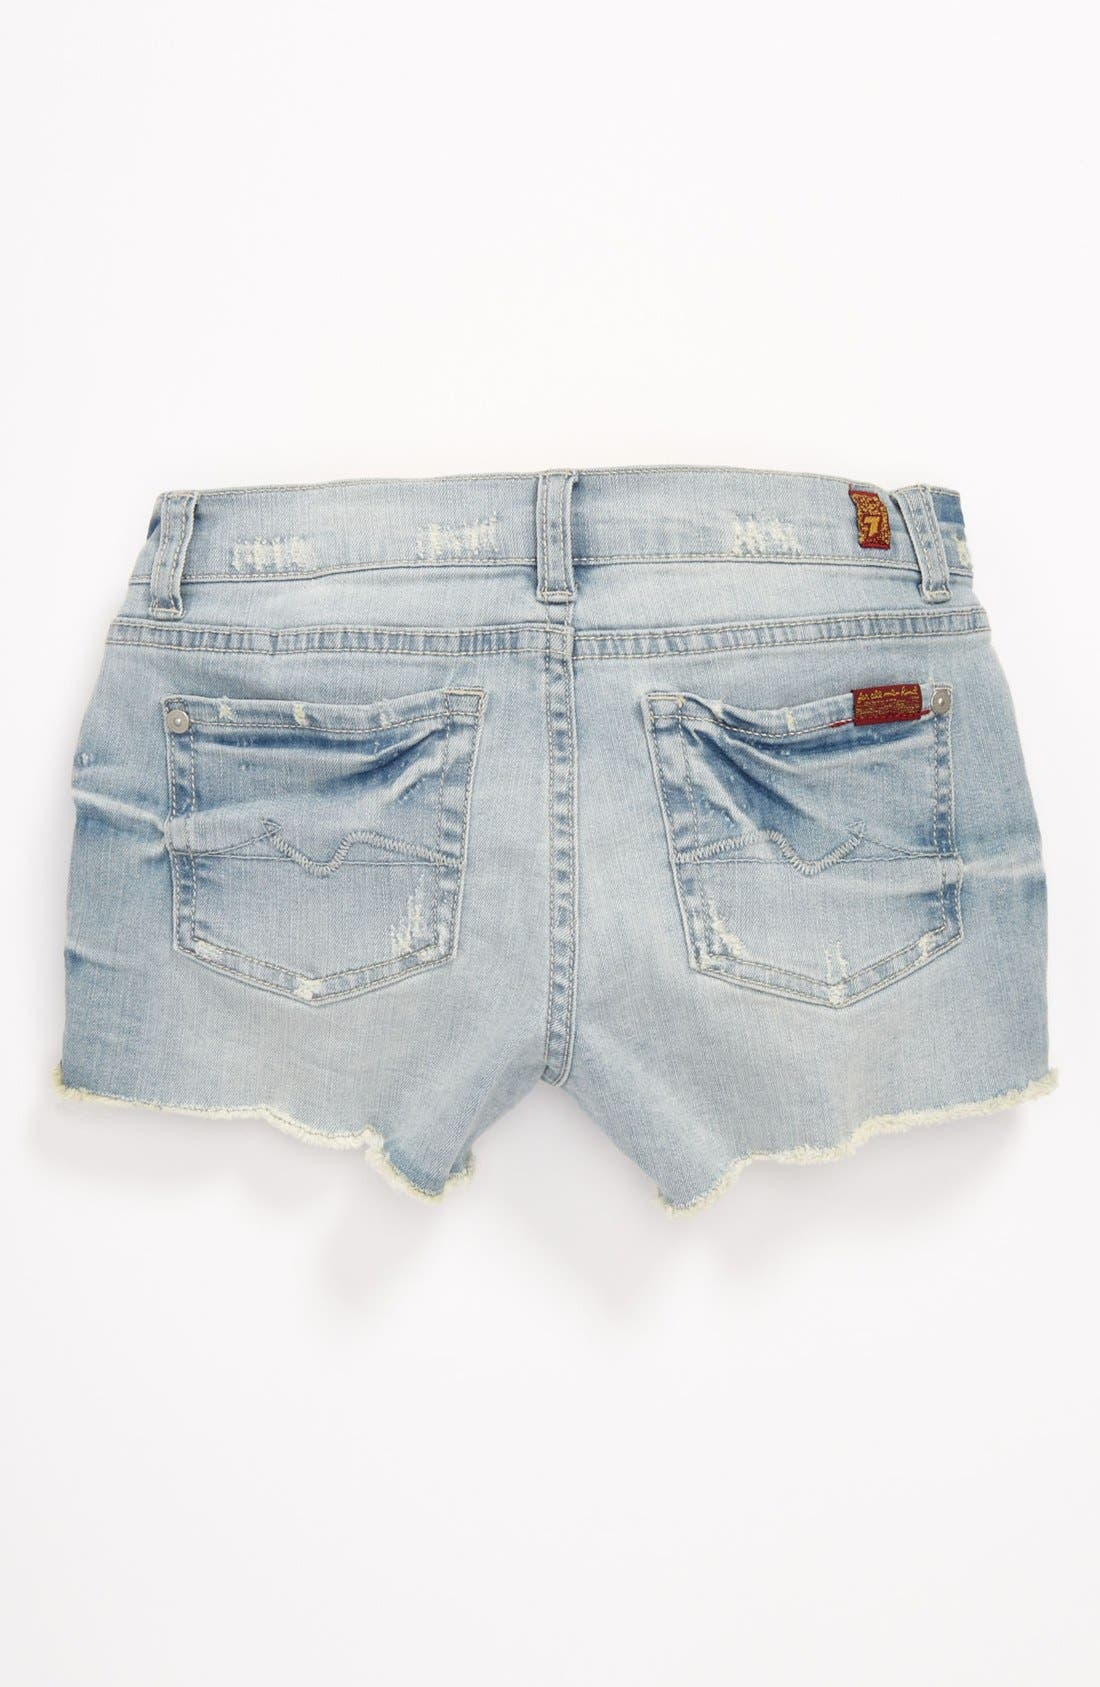 Alternate Image 1 Selected - 7 For All Mankind® 'Del Shorty' Shorts (Big Girls)